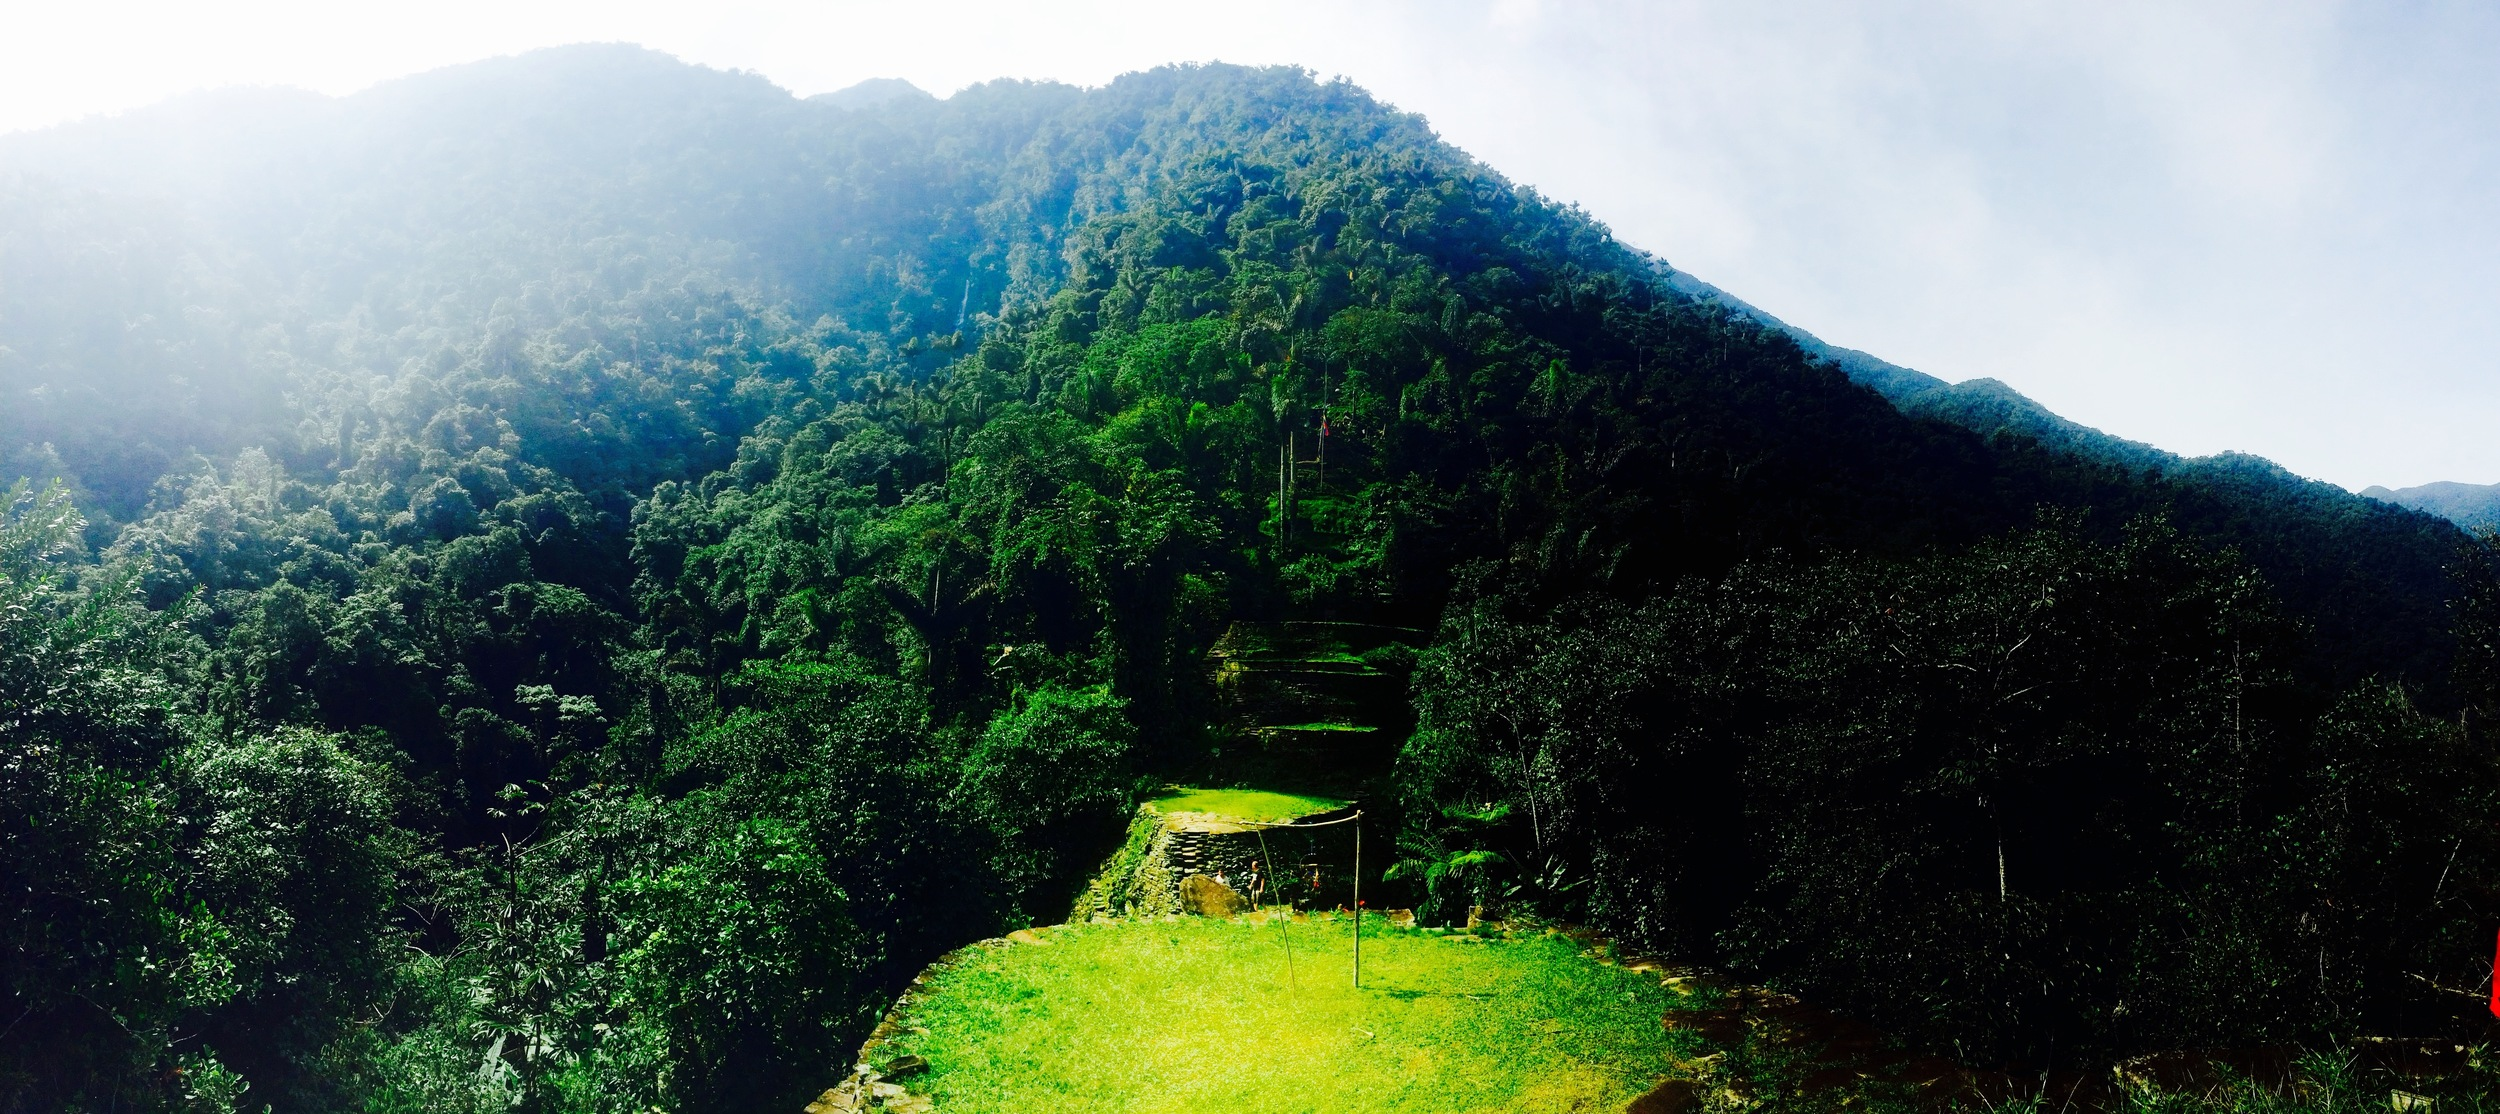 It took five days of trekking through dense Colombian rainforest to reach the Lost City, founded 600 years before Machu Pichuu. Some 50,000 indigenous people still live in the Sierra Nevada of Santa Marta.